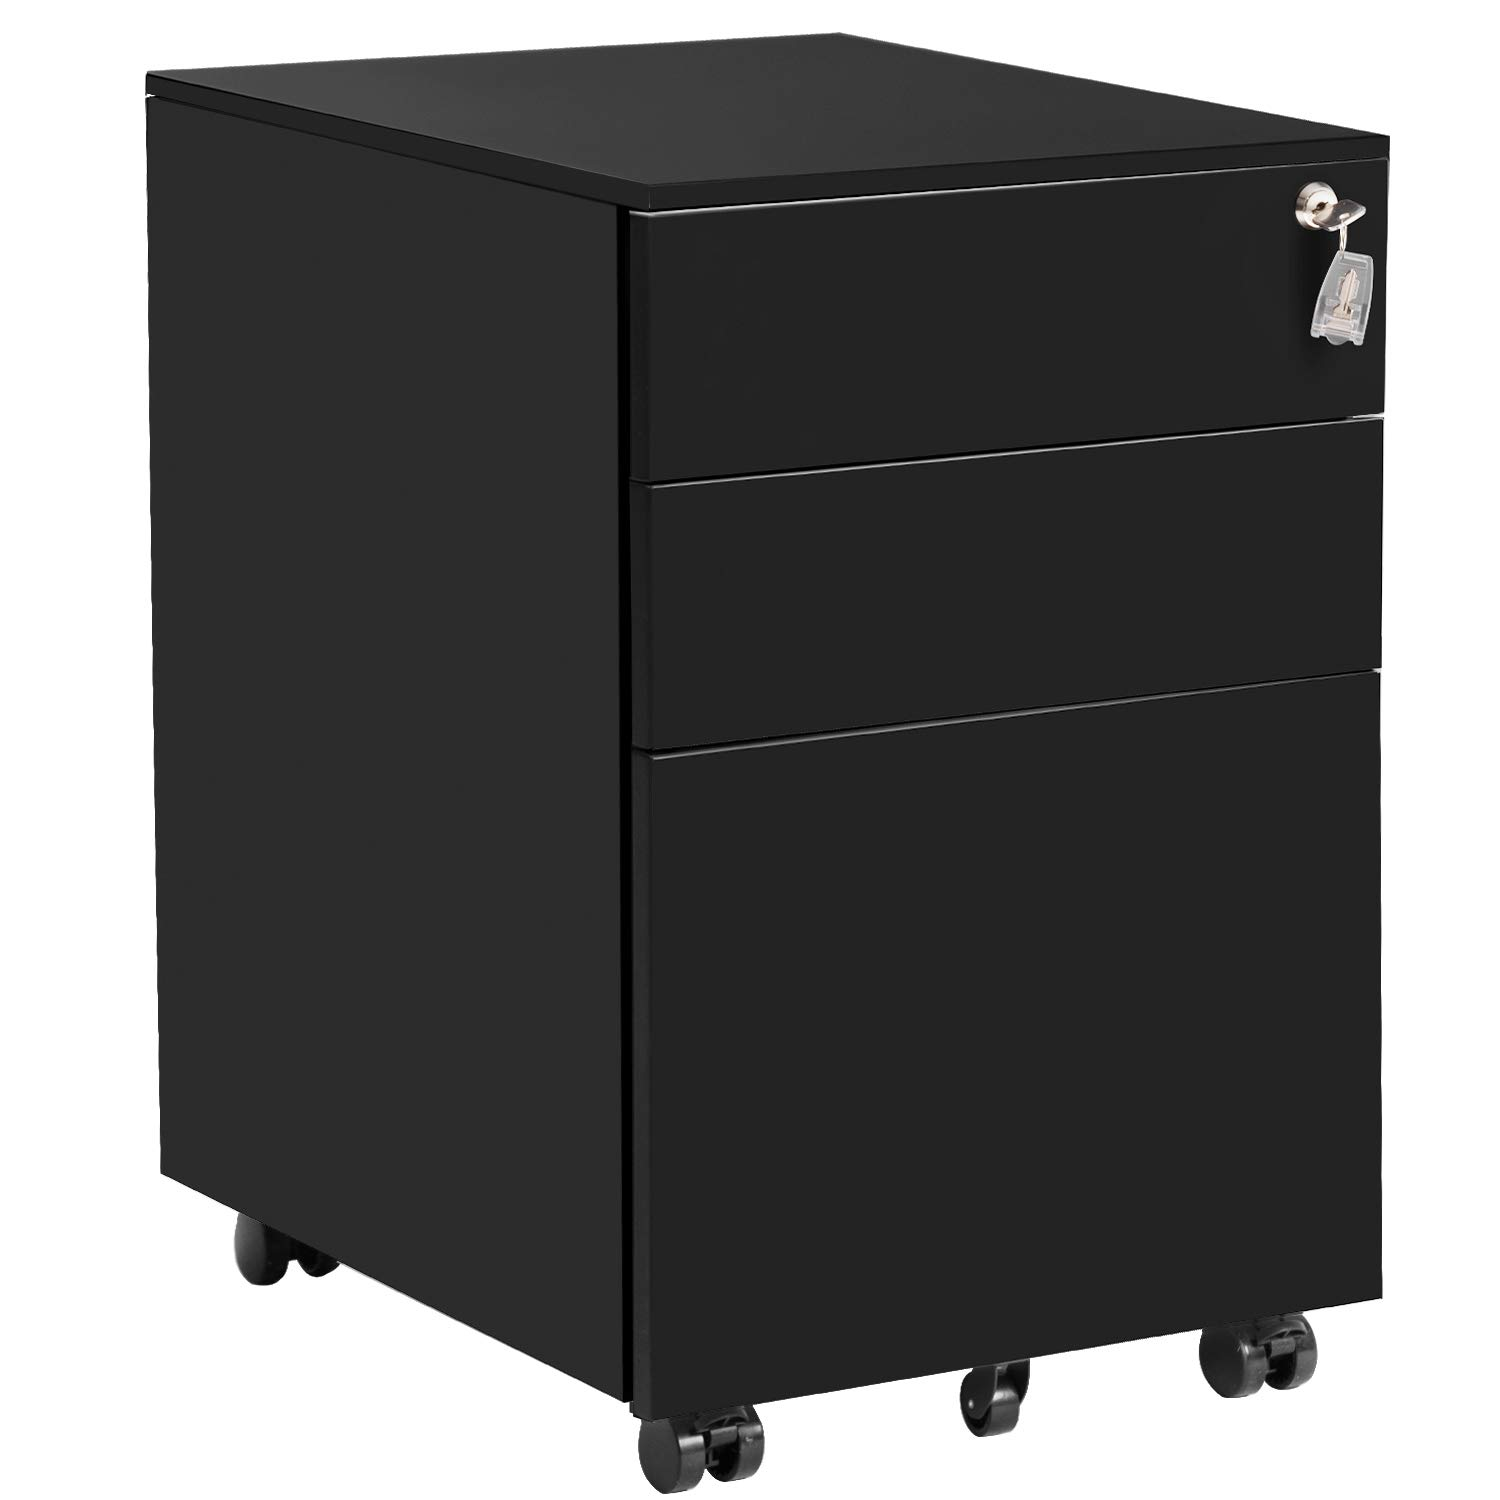 3 Drawer File Cabinet Mobile Metal Cabinet with Drawers Lockable Drawer Cabinet Under Desk Fully Assembled Except for 5 Casters (Black) by P PURLOVE